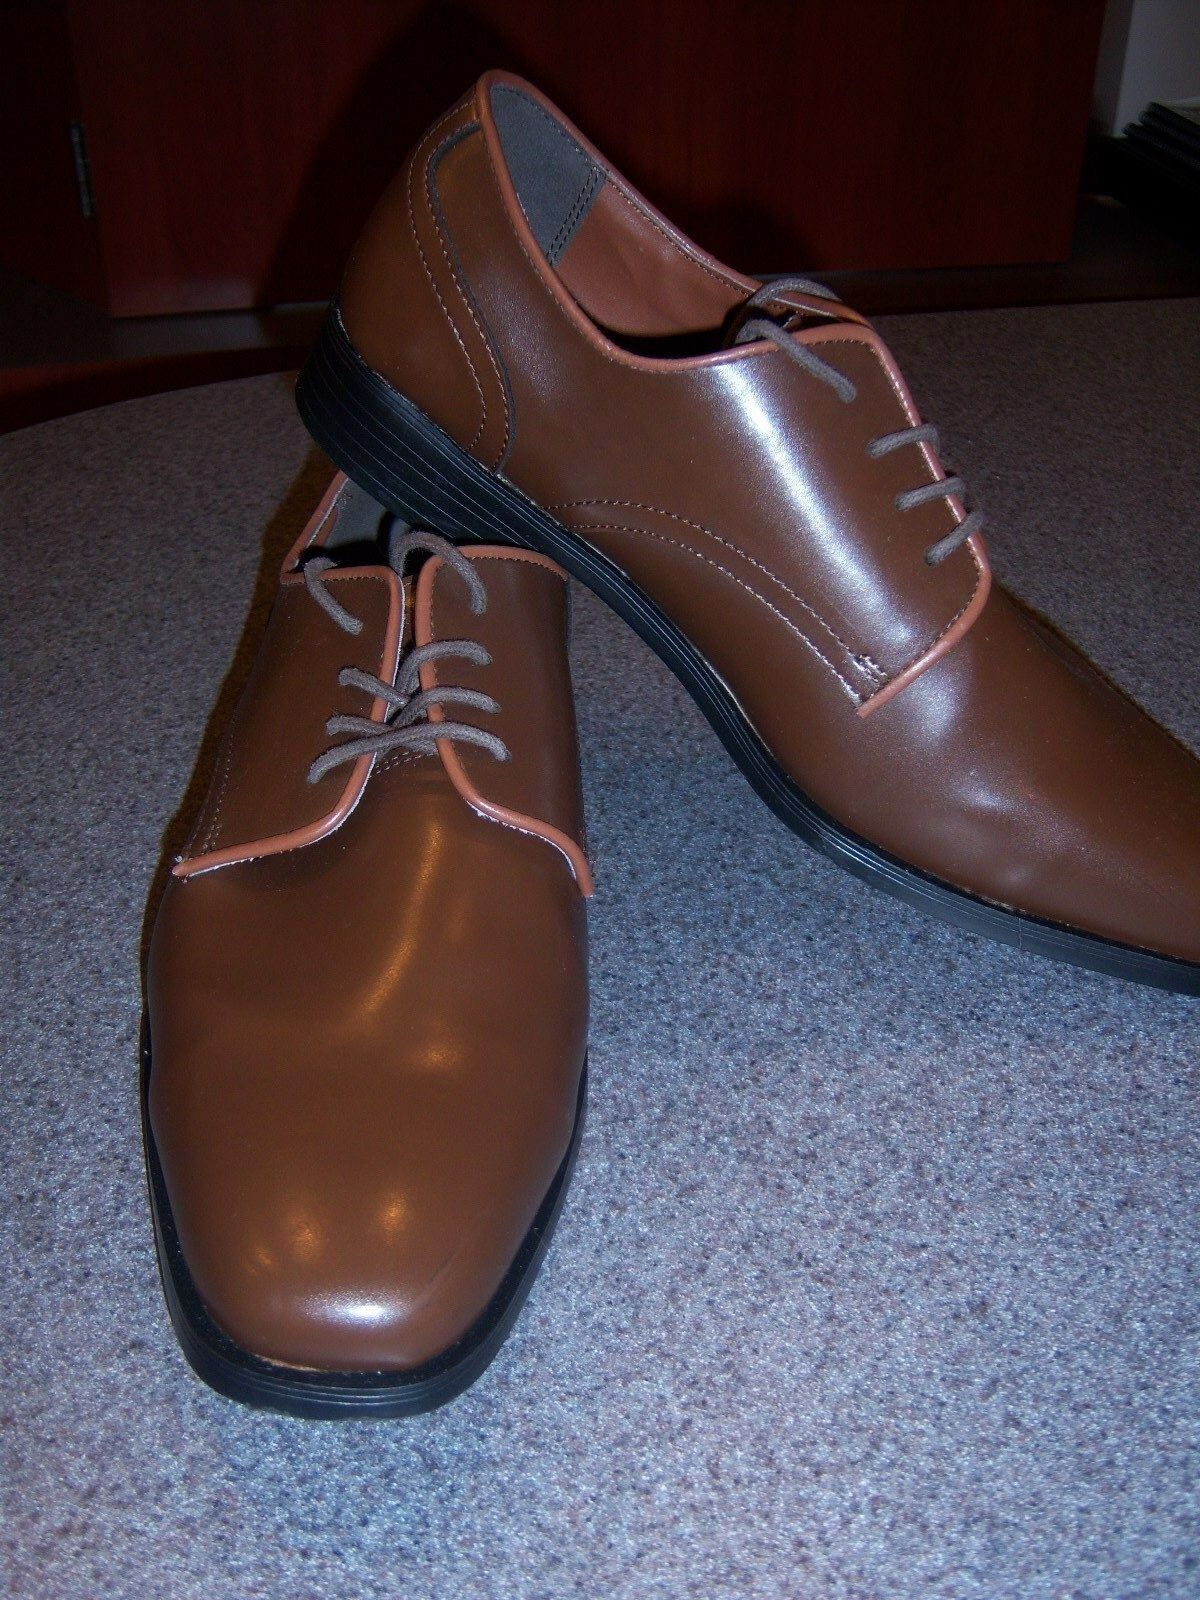 Mens Dress shoes - Maple Brown Matte style finish square toe oxford style Matte - most sizes 358325